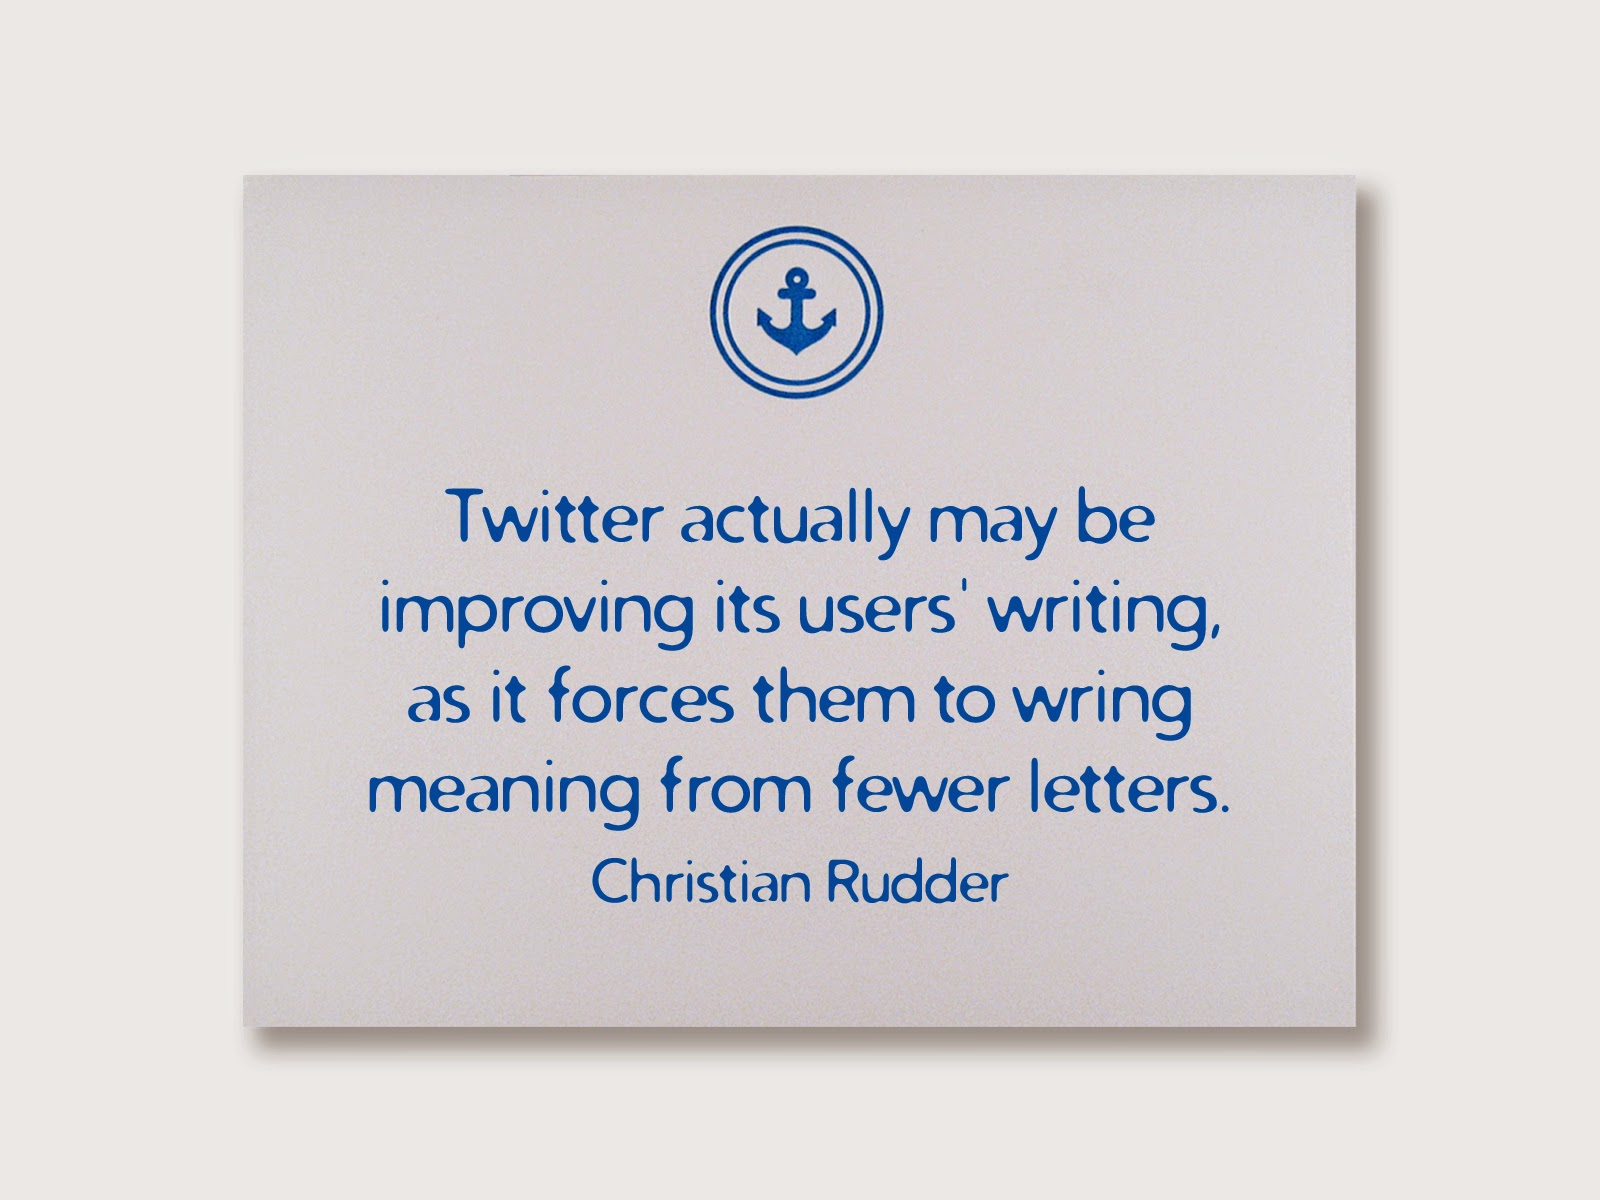 Twitter actually may be improving its users' writing, as it forces them to wring meaning from fewer letters. Christian Rudder